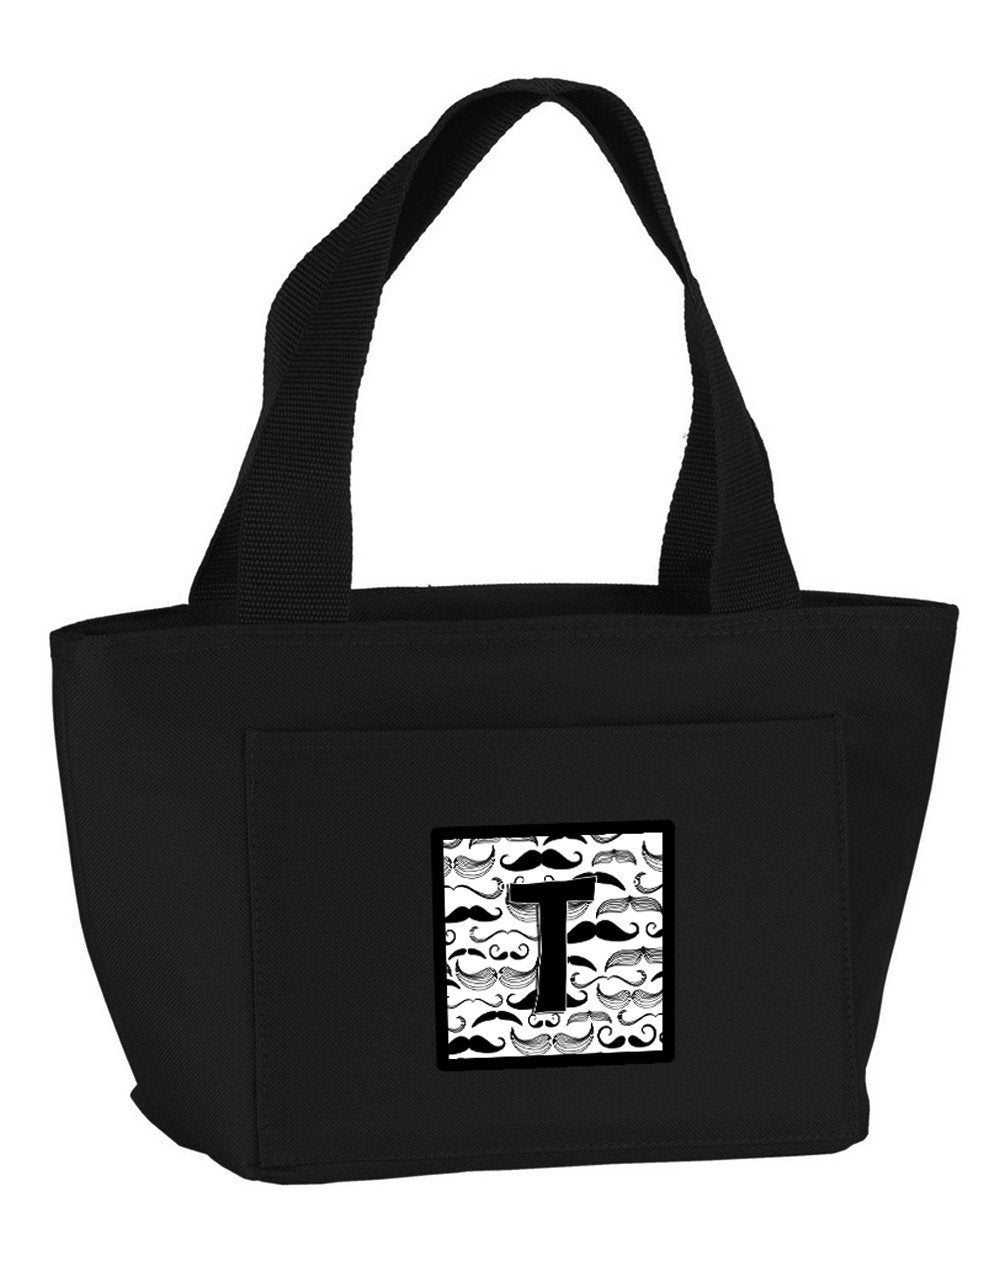 Letter T Moustache Initial Lunch Bag CJ2009-TBK-8808 by Caroline's Treasures